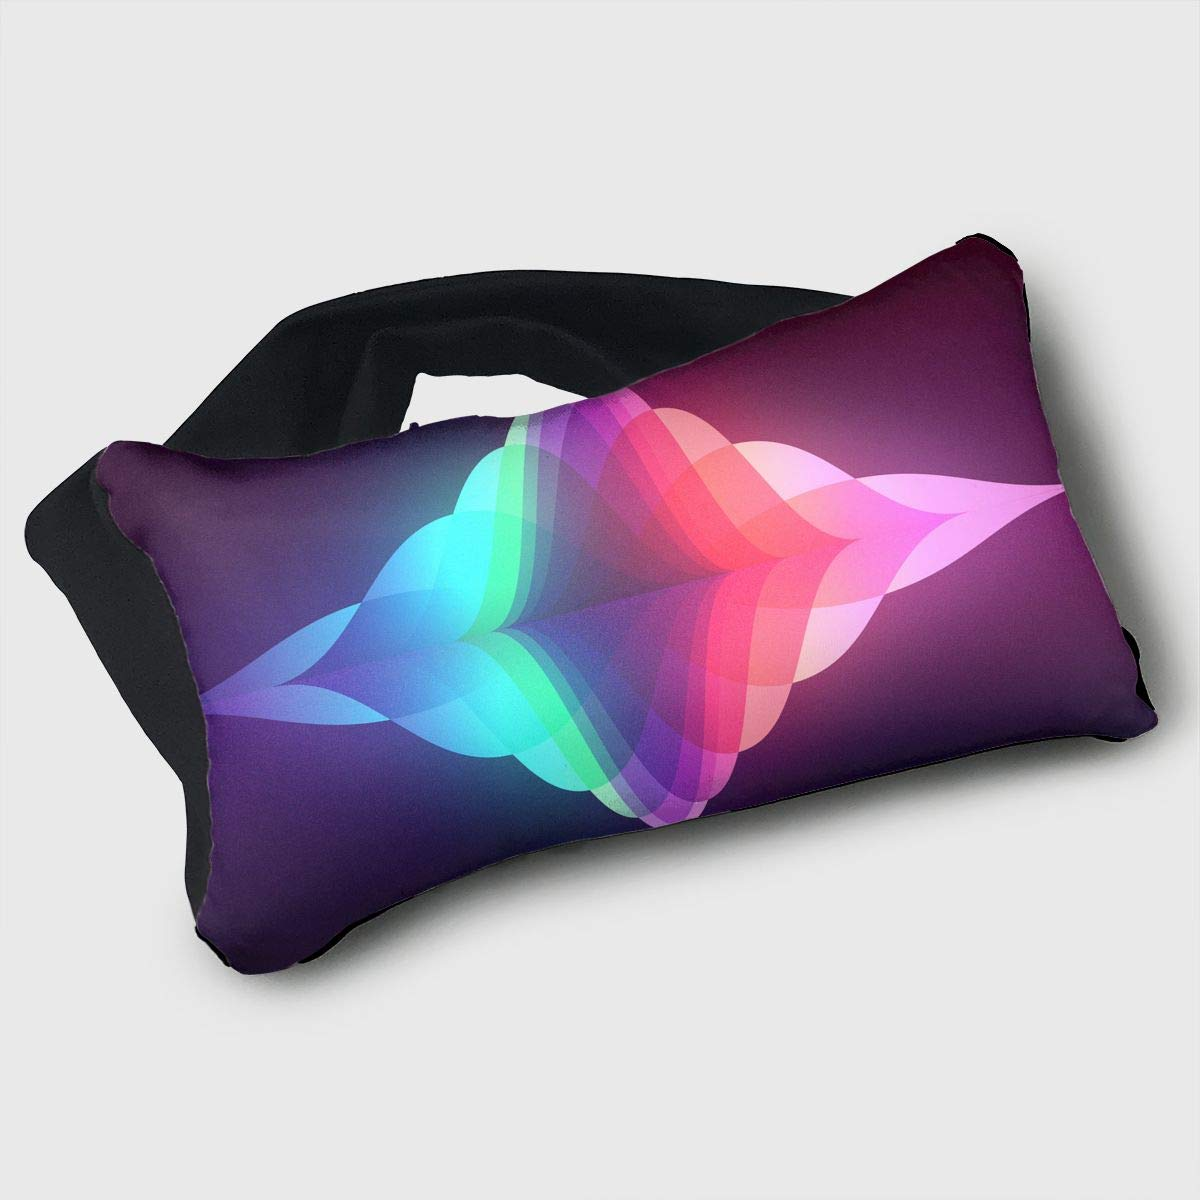 Voyage Travel Pillow Eye Mask 2 in 1 Portable Neck Support Scarf Music Sound Ergonomic Naps Rest Pillows Sleeper Versatile for Airplanes Car Train Bus Home Office